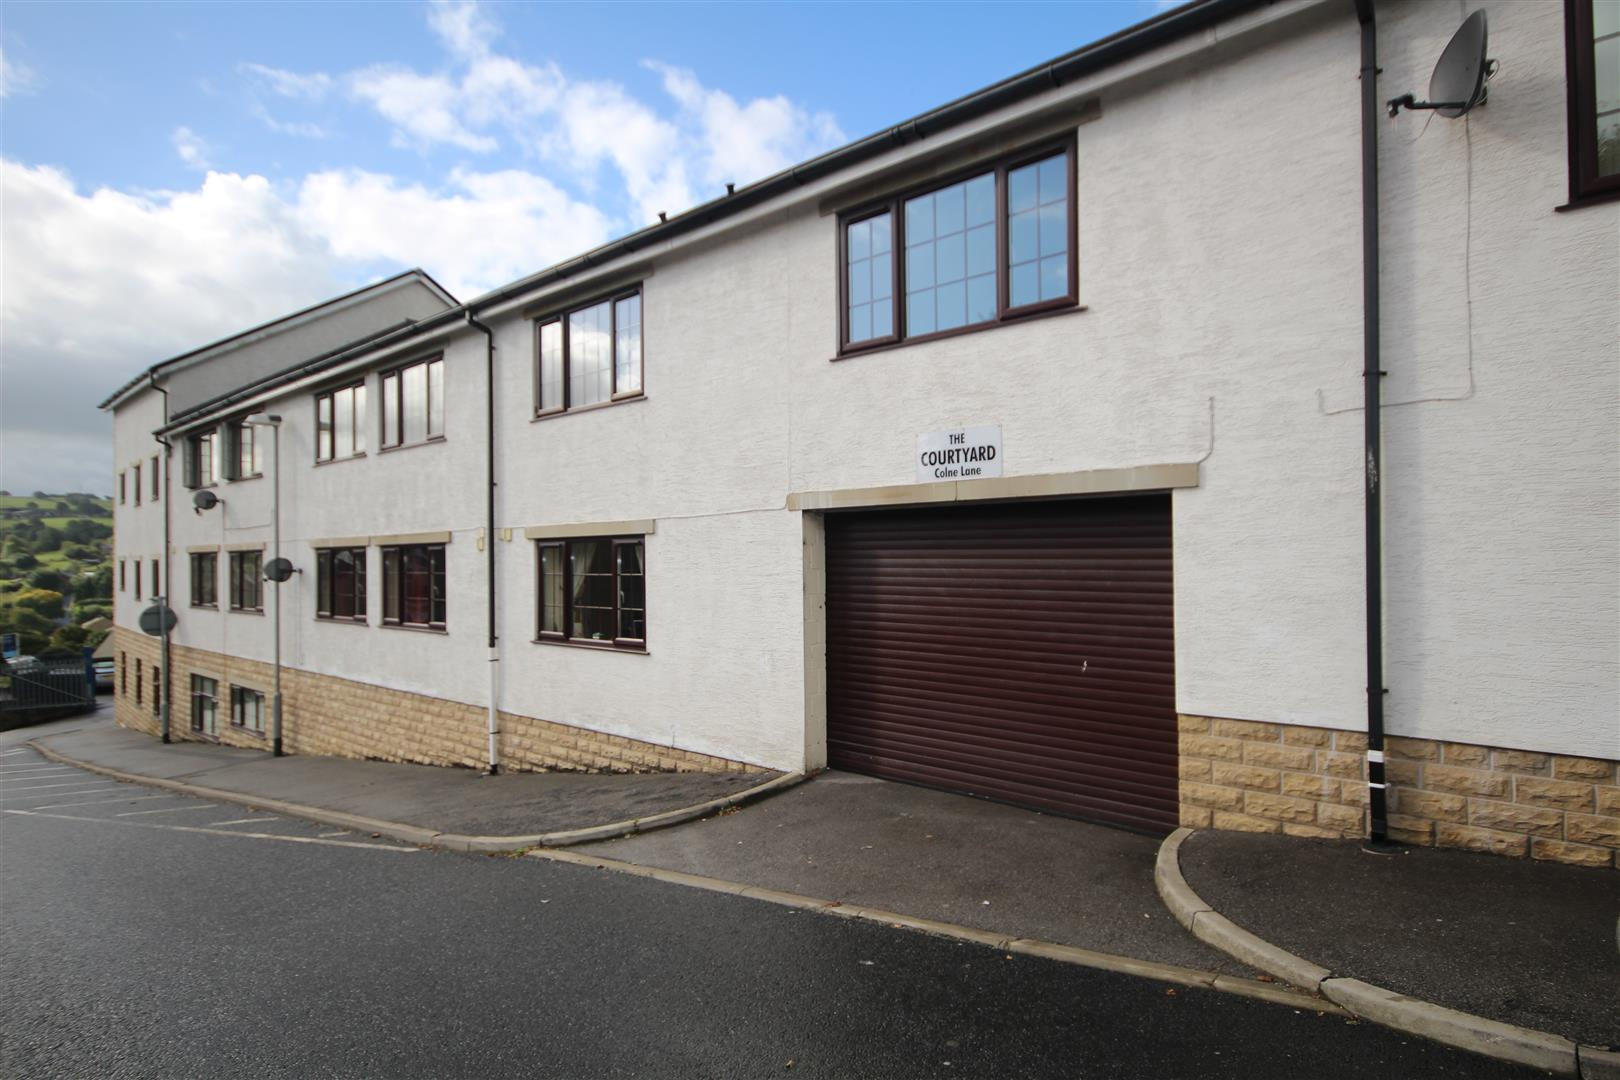 2 bedroom apartment For Sale in Colne - 2015-09-24 09.40.42.jpg